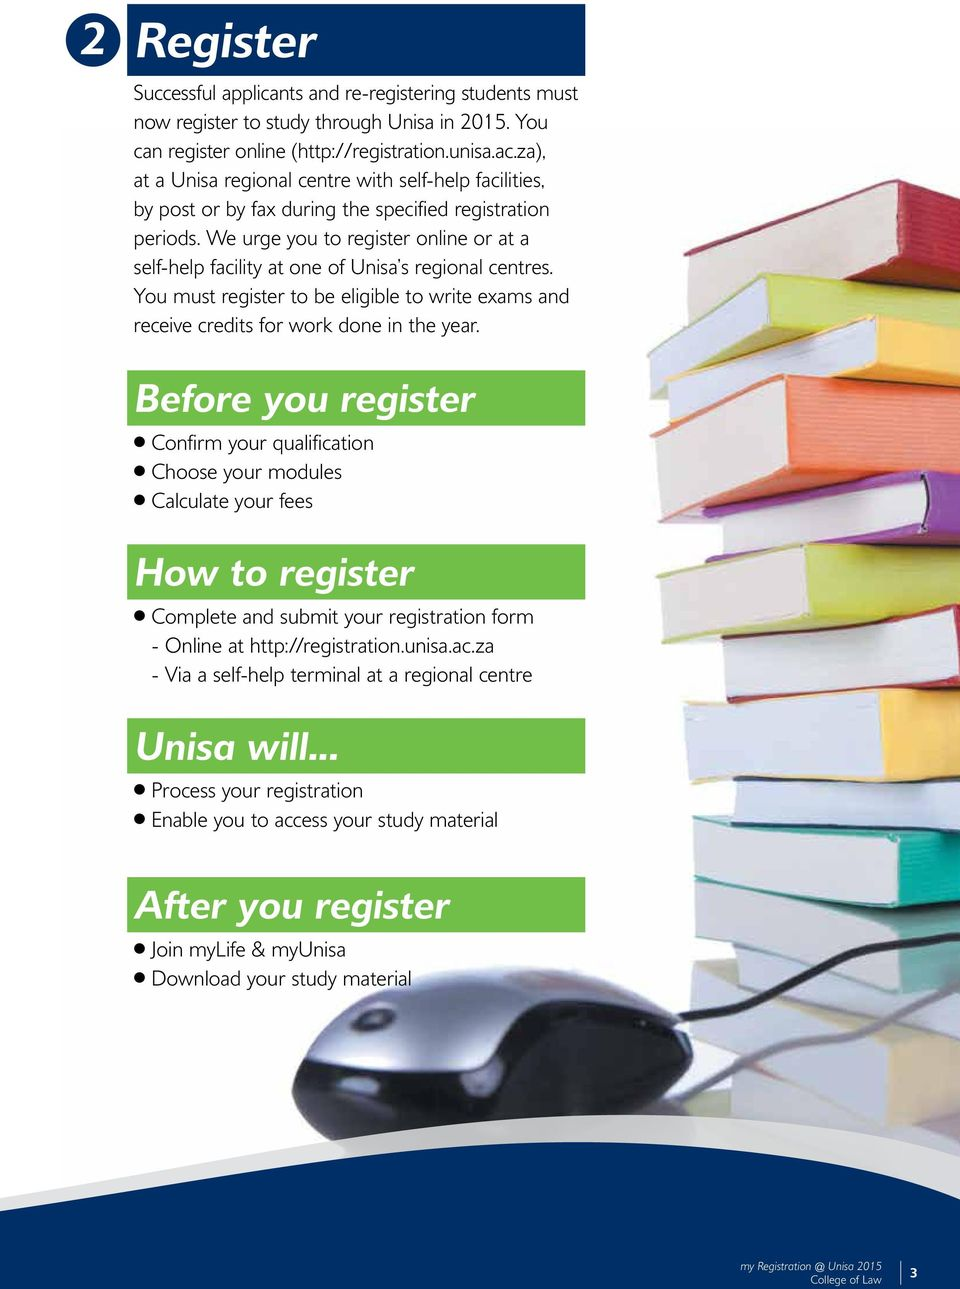 We urge you to register online or at a self-help facility at one of Unisa s regional centres. You must register to be eligible to write exams and receive credits for work done in the year.